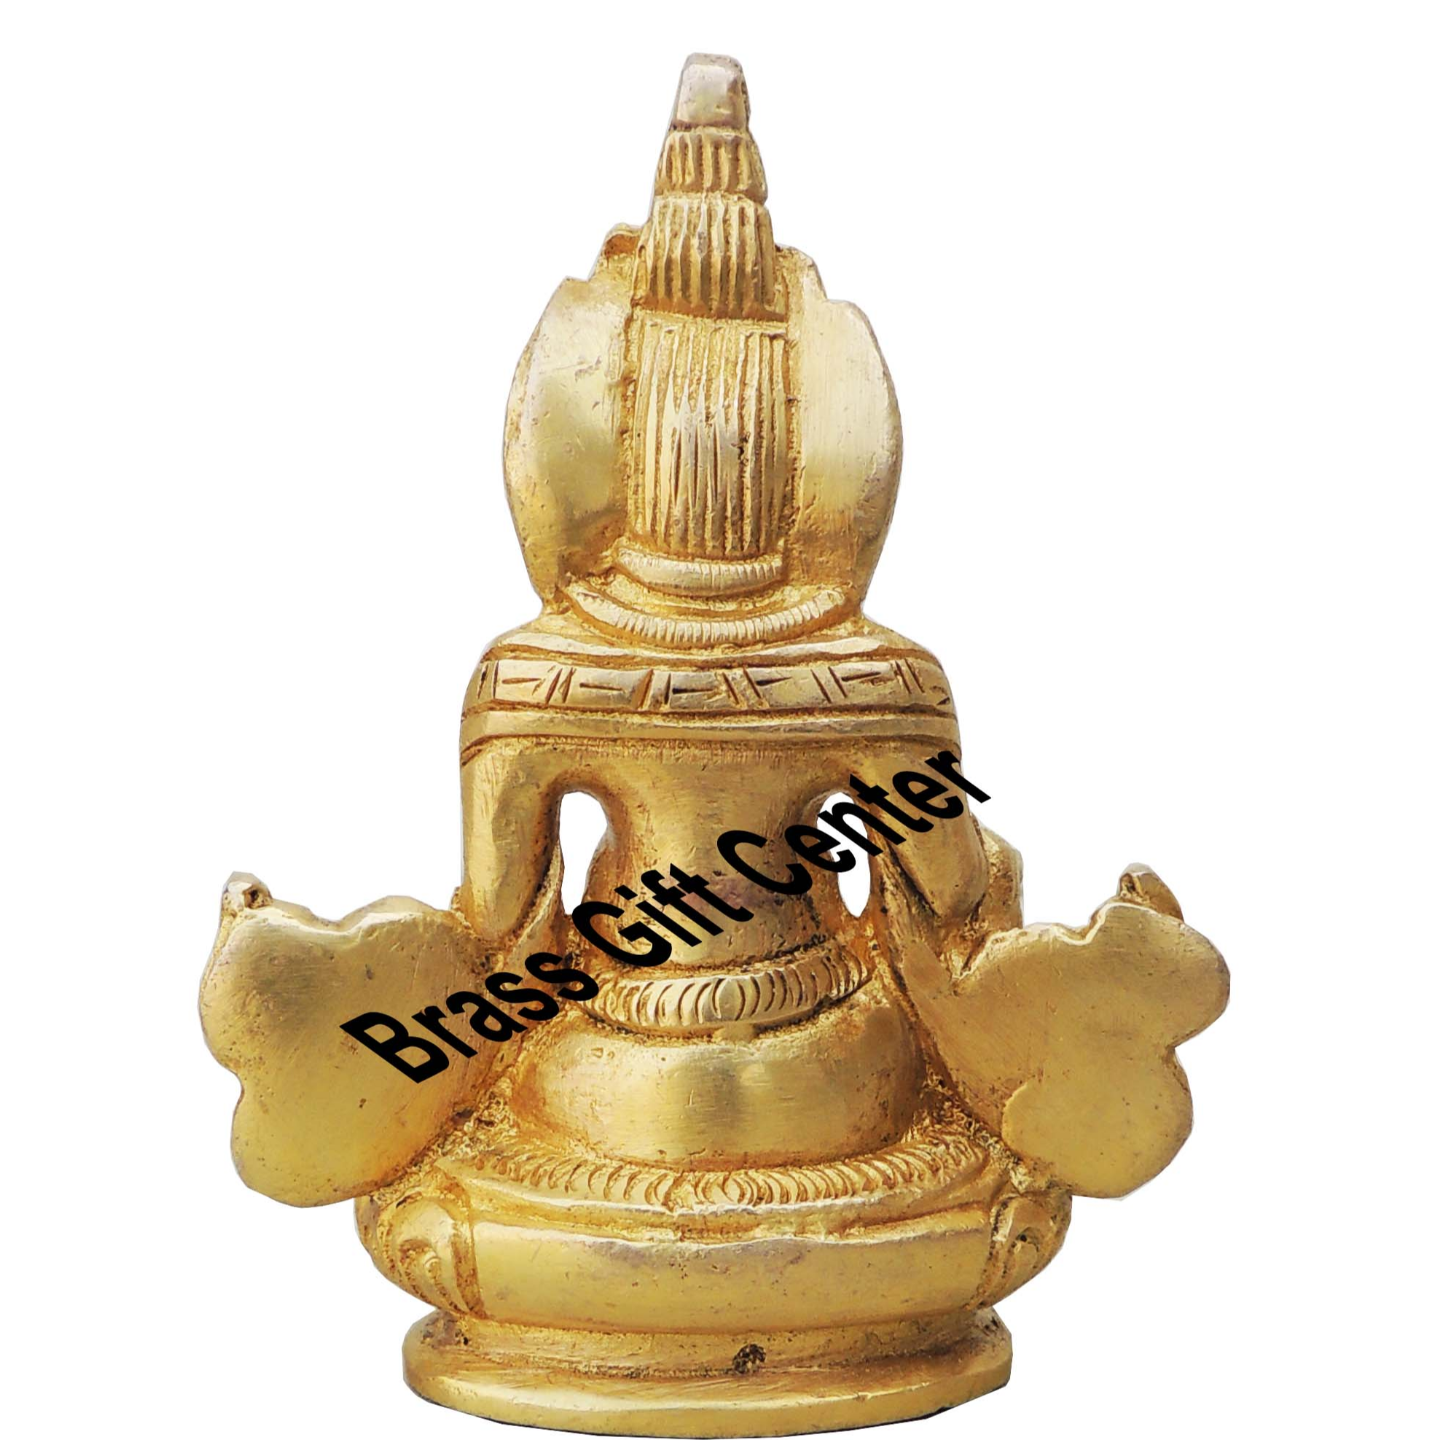 Brass Showpiece Kuber Mahaaraj Ji Idol With Brass Finish - Height 4.2 Inch Brass Showpiece Kuber Maharaj Ji Idol With Brass Finish - Height 18 cm